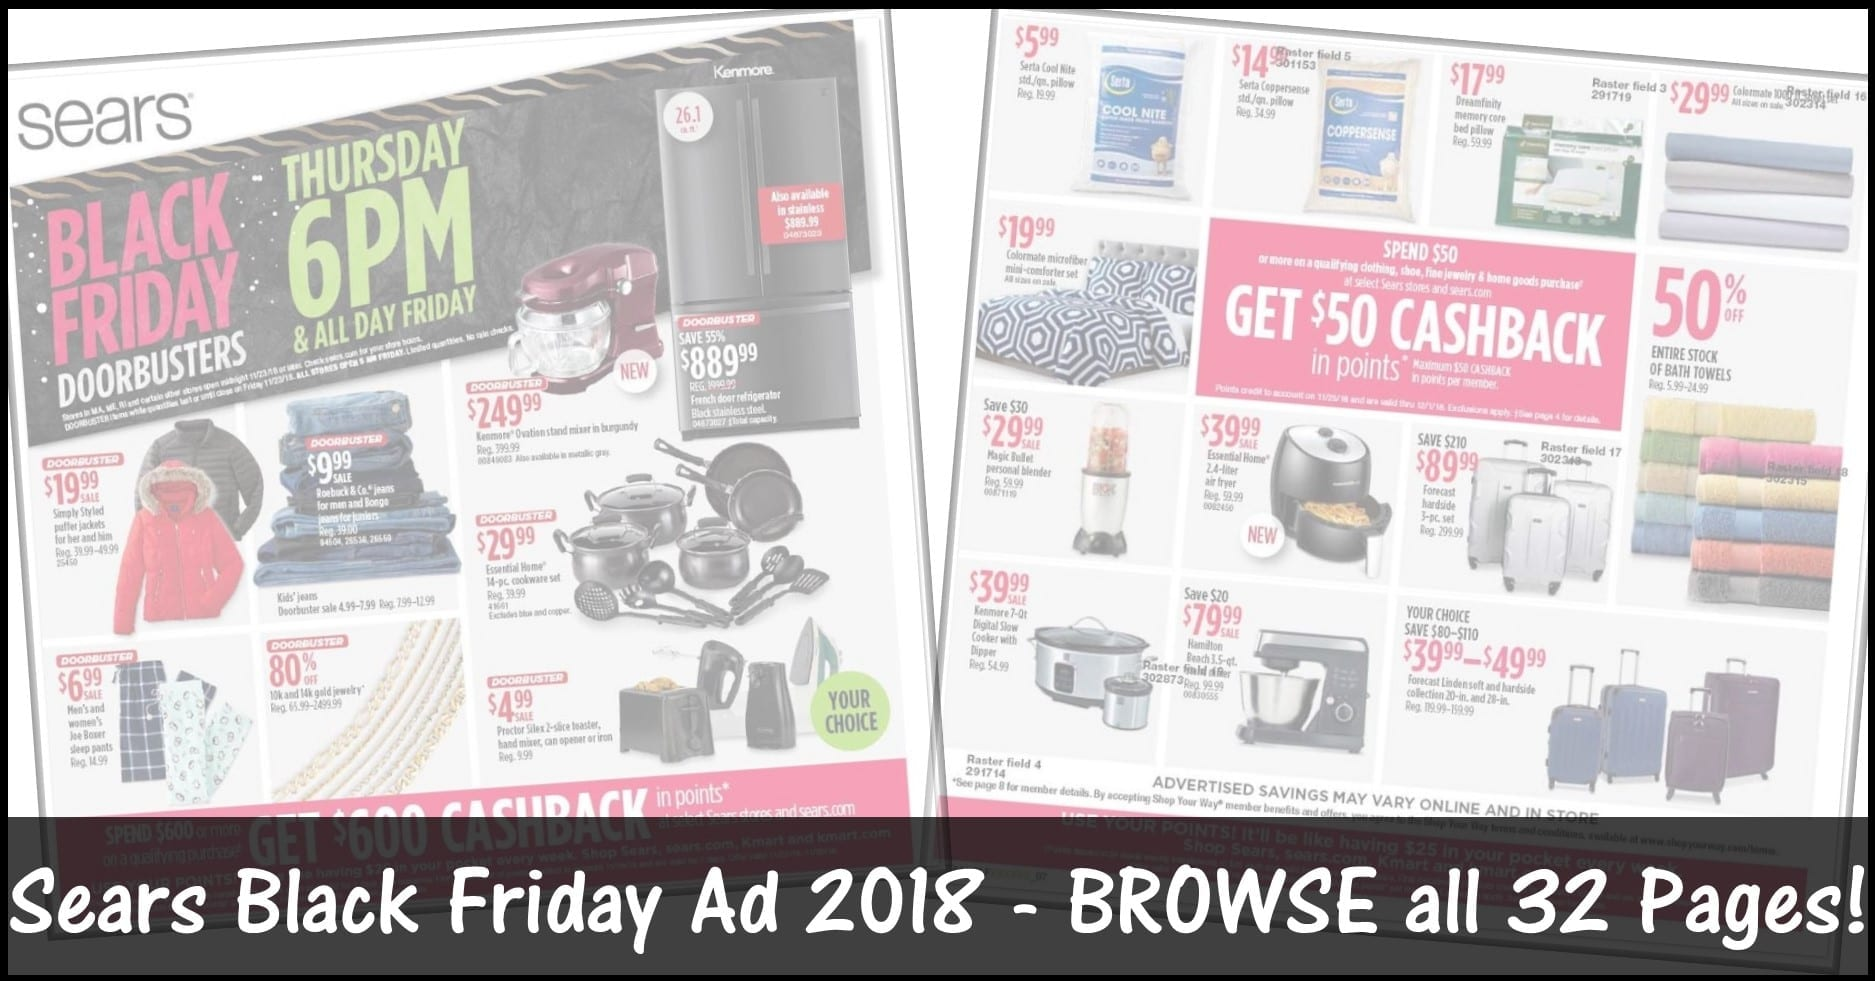 Sears Black Friday Ad 2018